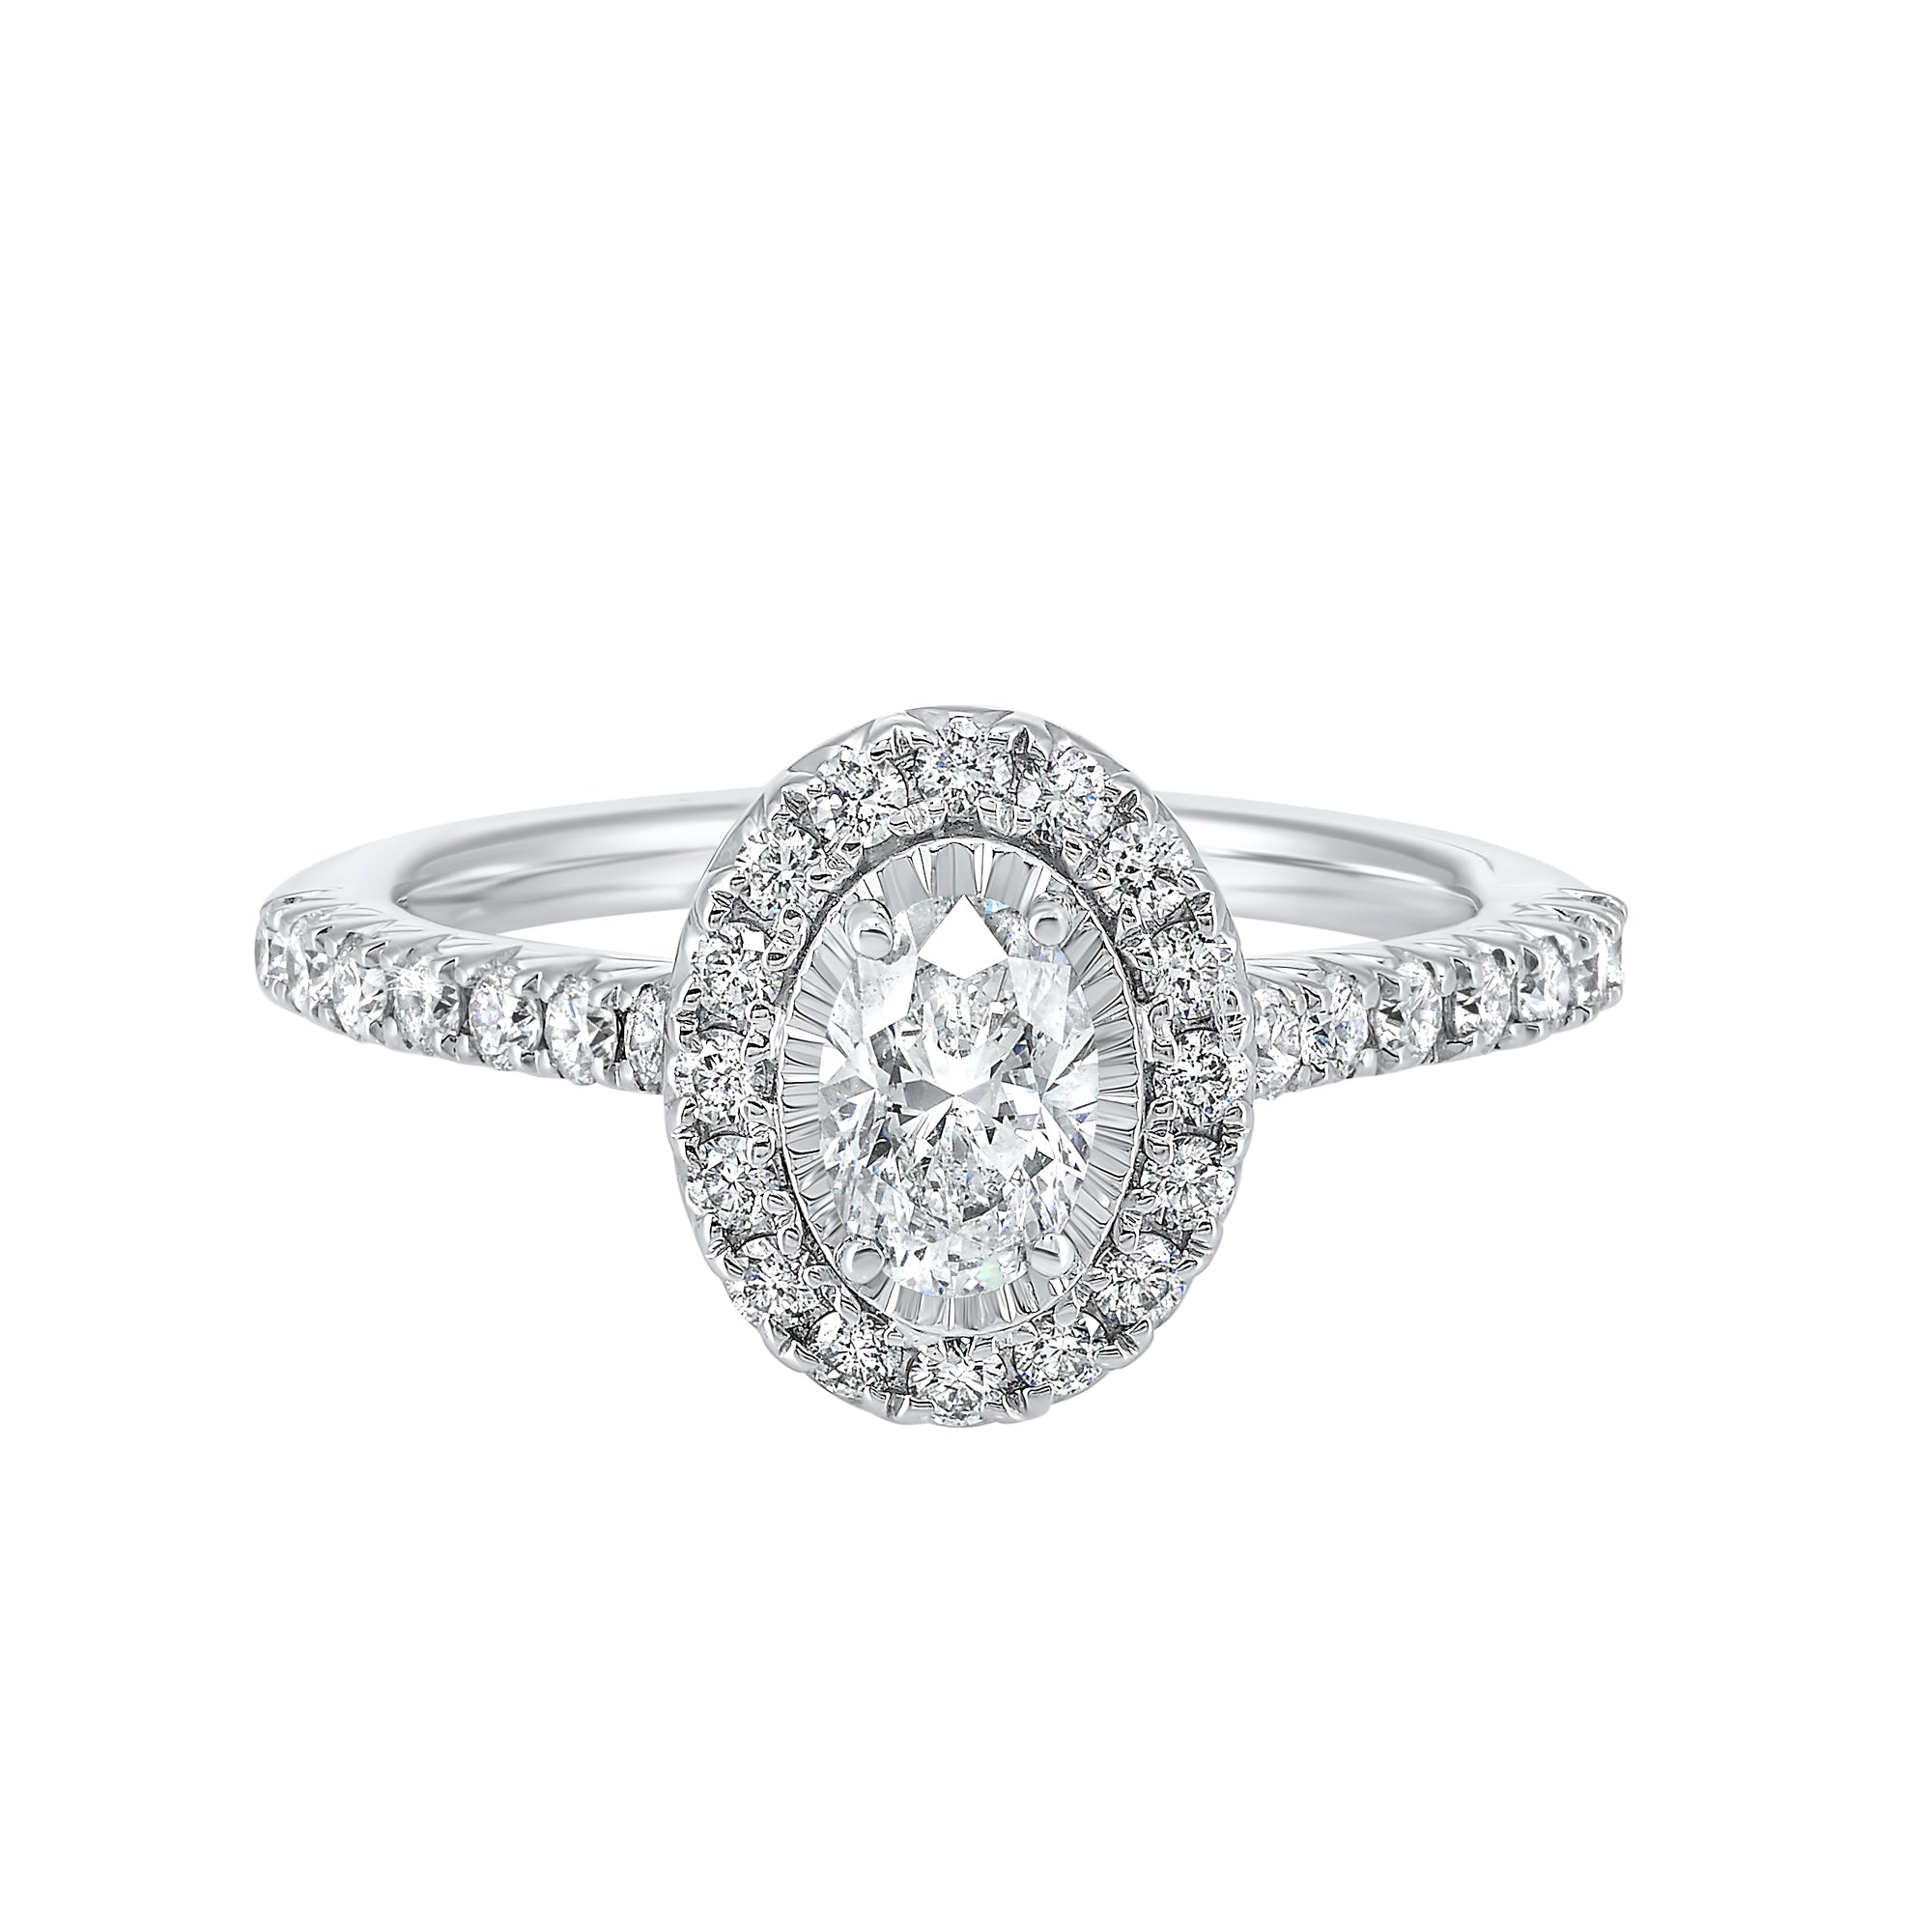 Oval Halo Diamond Engagement Ring in 14K White Gold (1 ct. tw.)